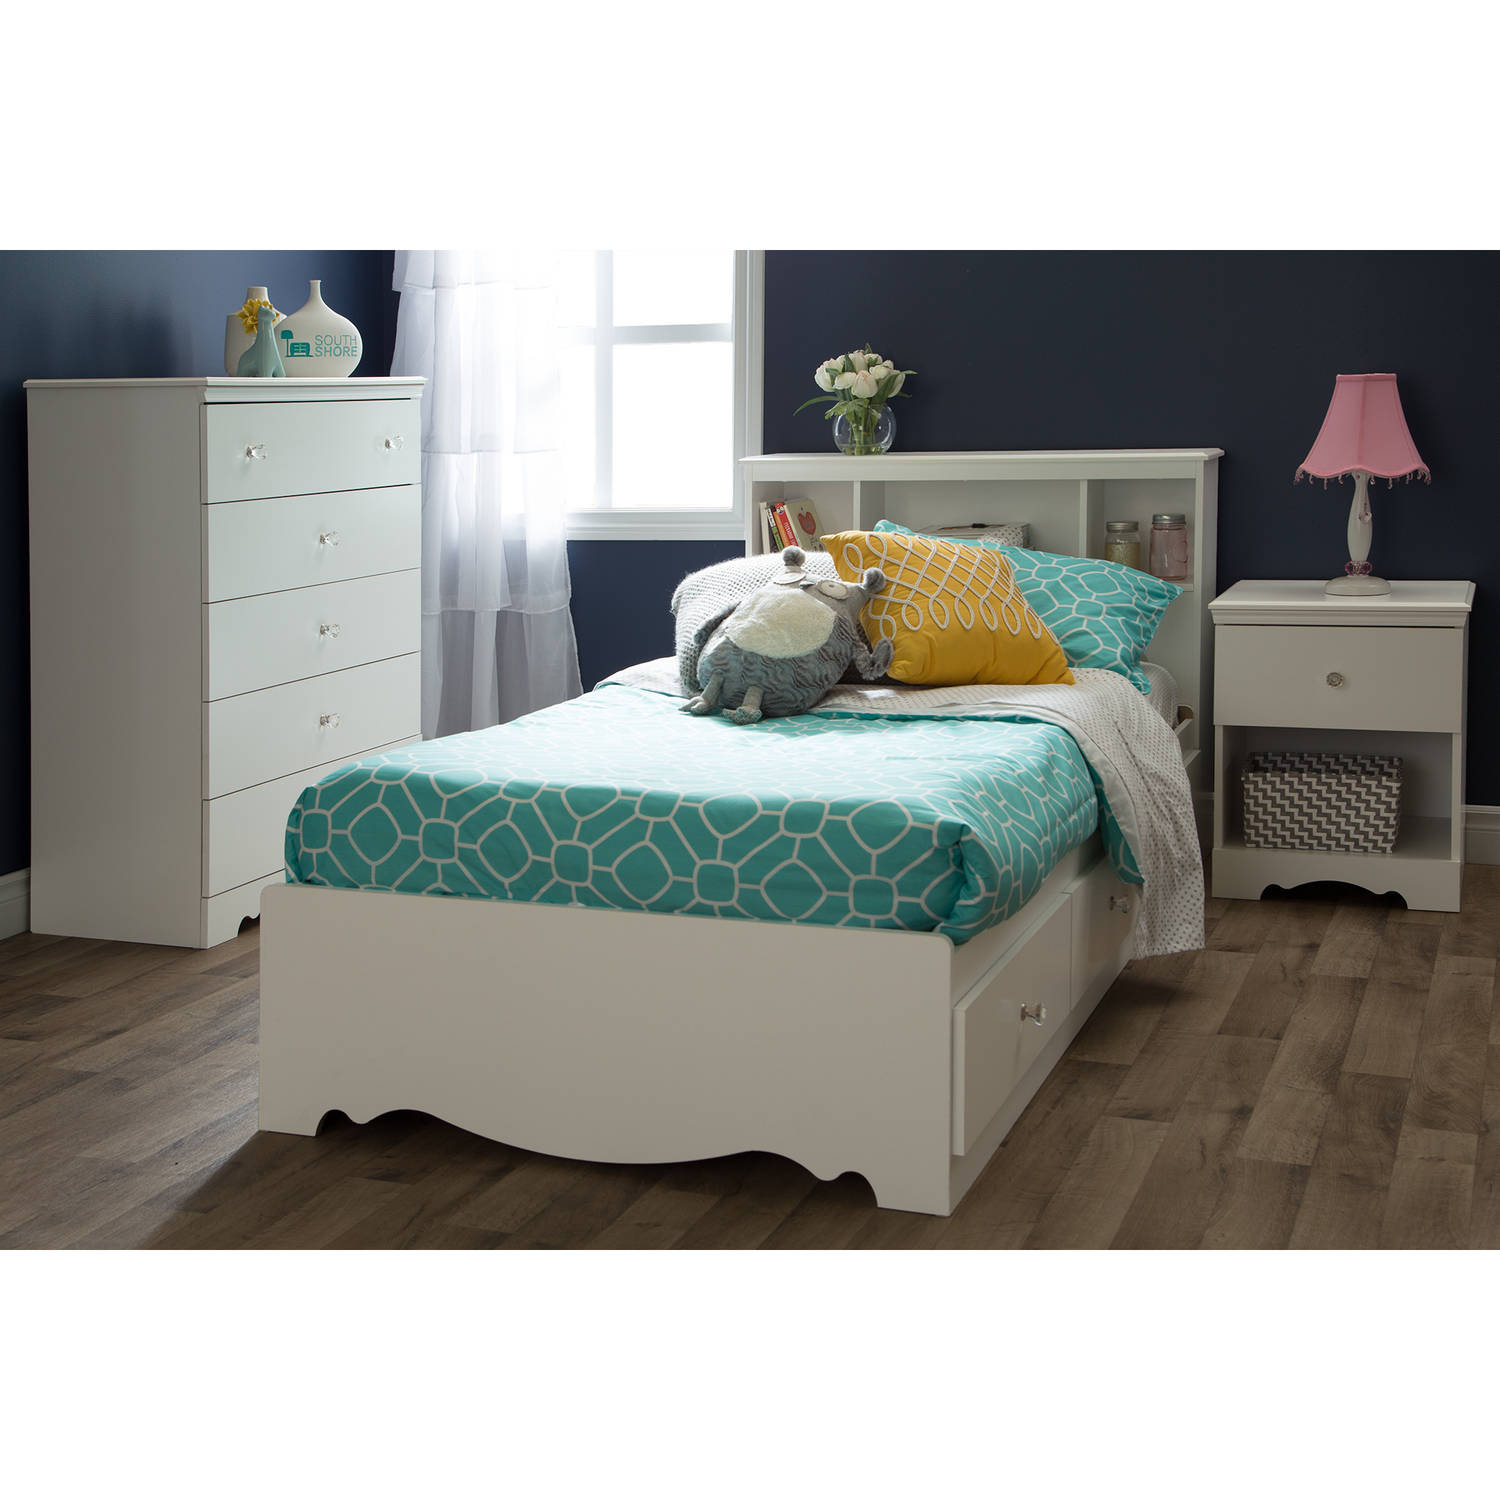 South Shore Crystal 5 Drawer Chest, White   Walmart.com